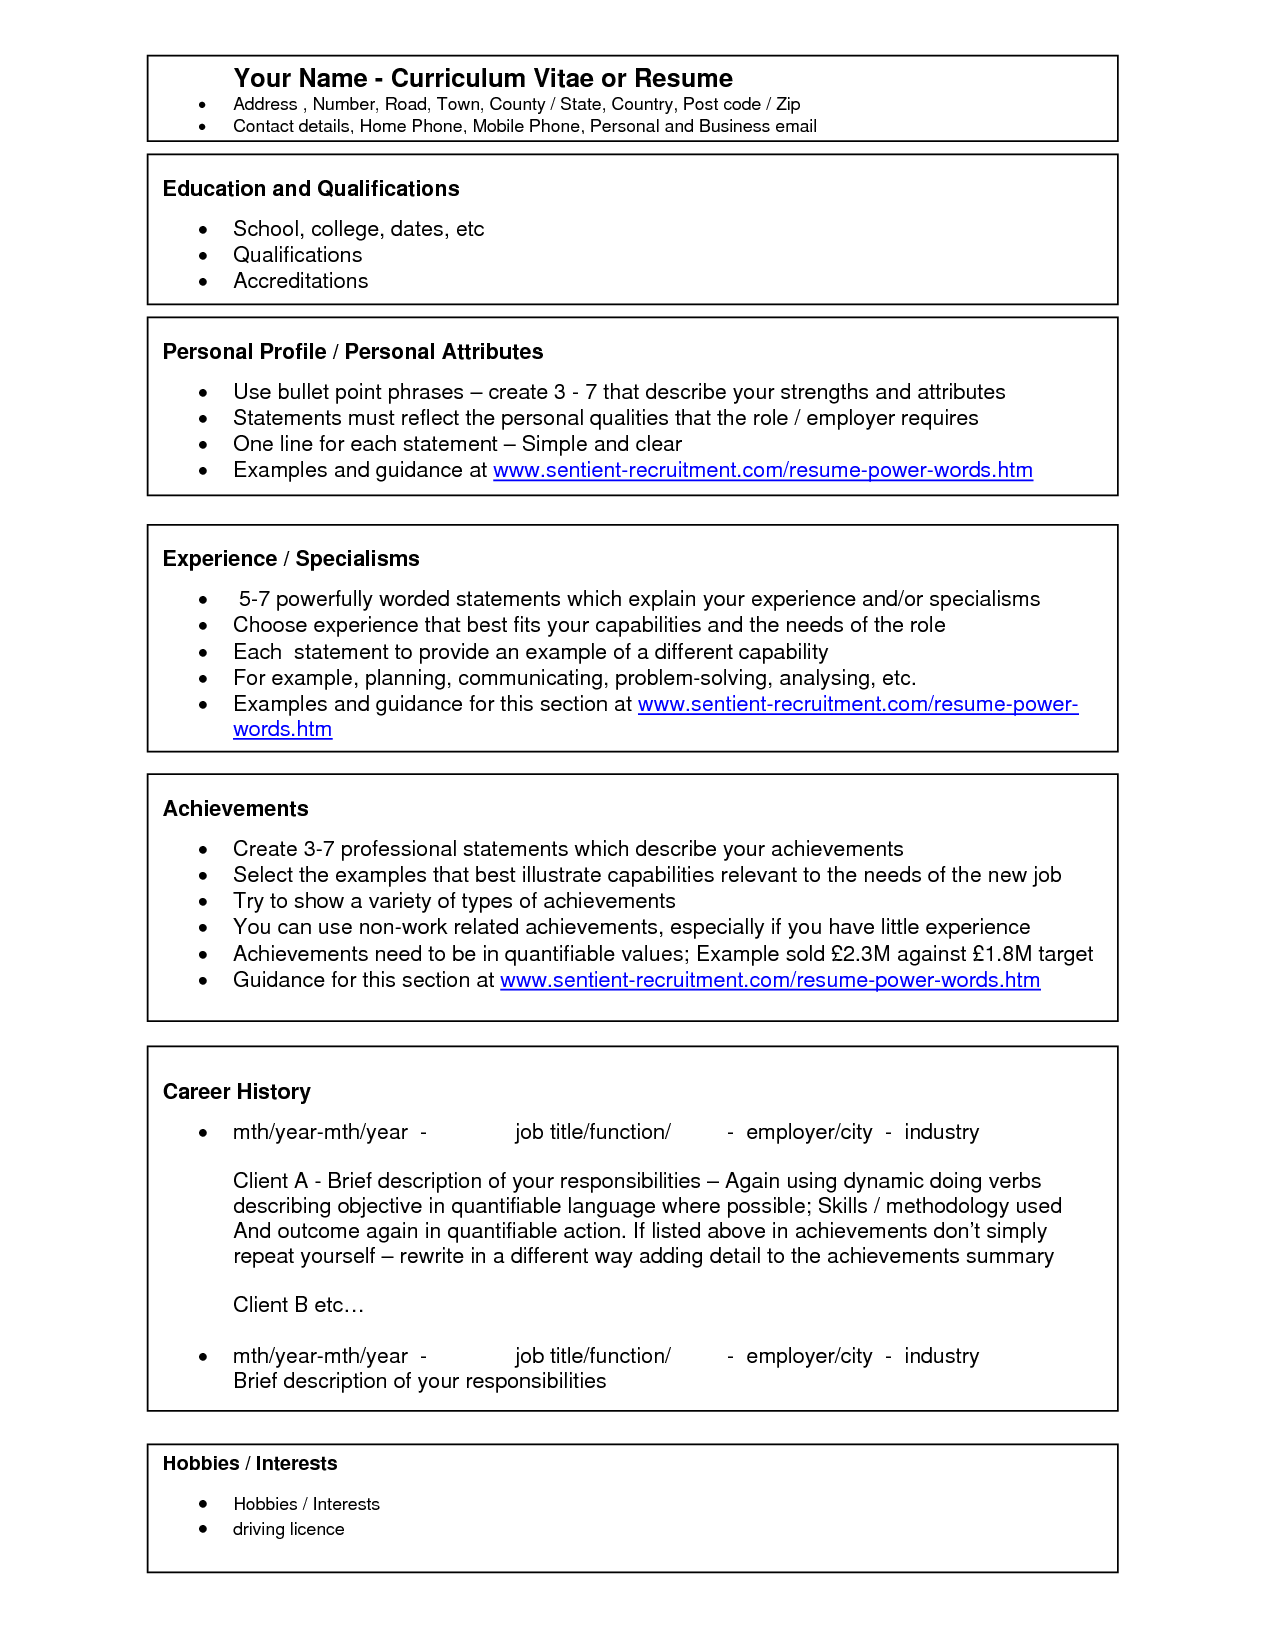 Resume Examples Free Sales Template Word Key Strengths Curriculum